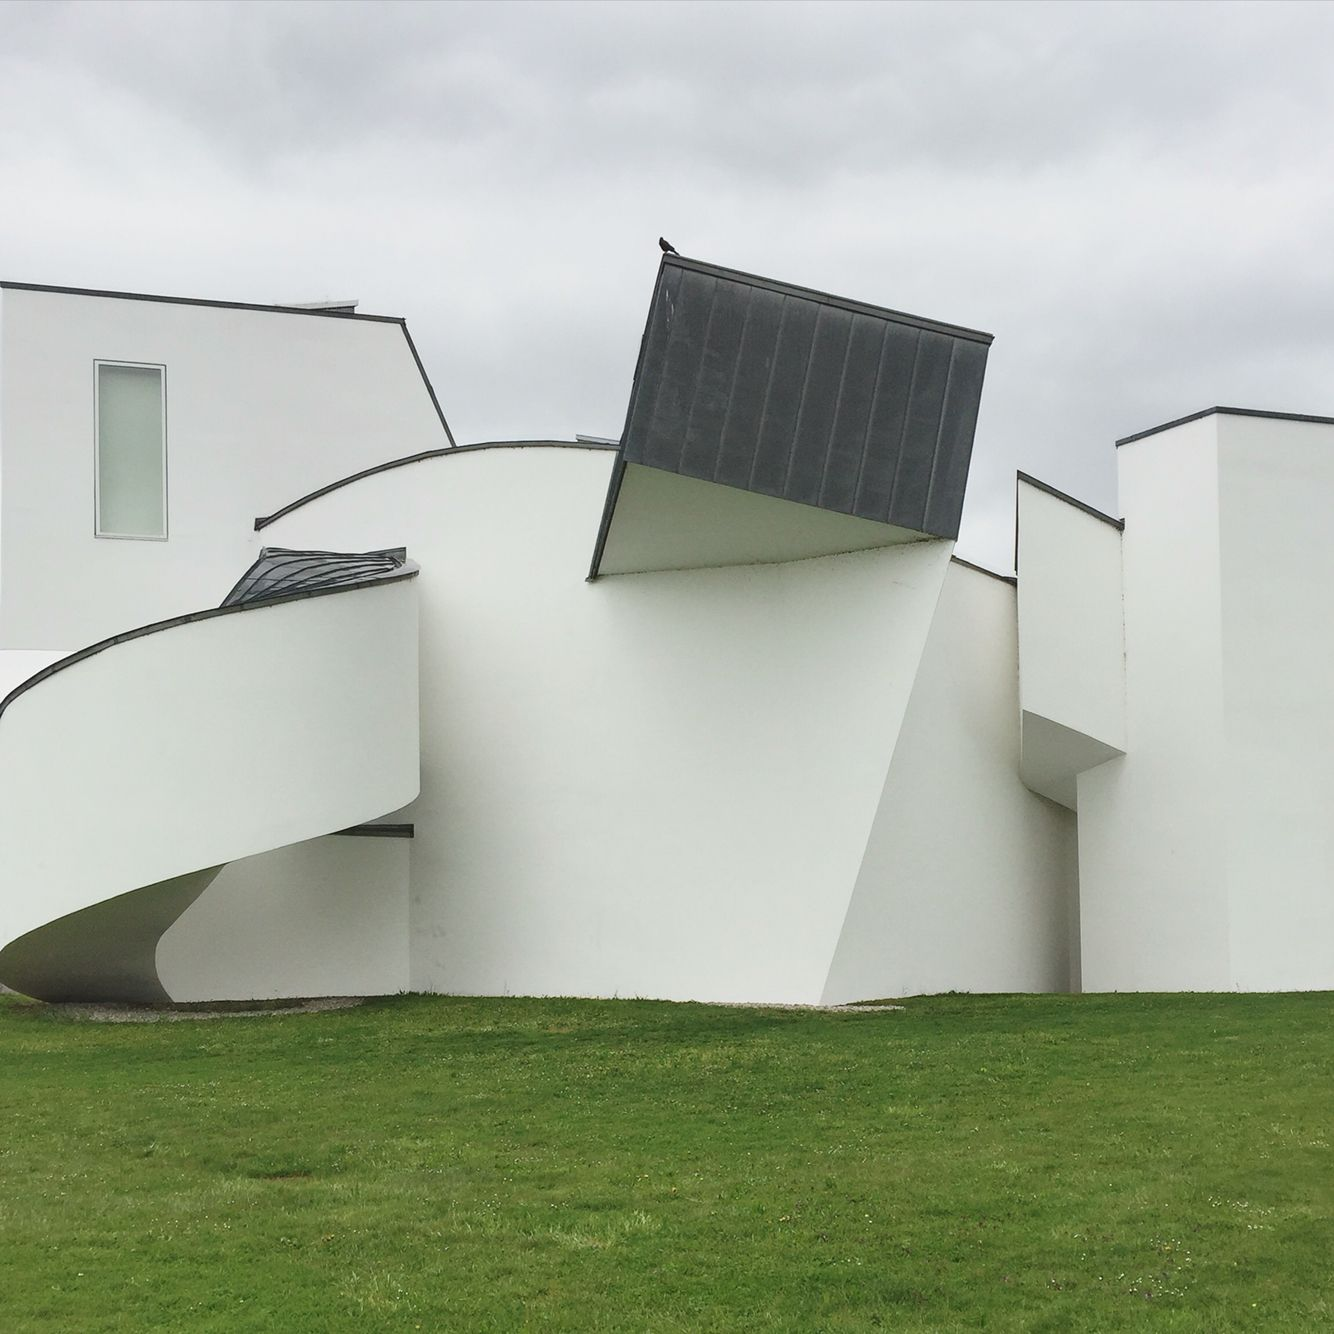 'Although Gehry used his trademark sculptural deconstructivist style for the museum building, he did not opt for his usual mix of materials, but limited himself to white plaster and a titanium-zinc alloy. For the first time, he allowed curved forms to break up his more usual angular shapes. The sloping white forms appear to echo the Notre Dame du Haut chapel by Le Corbusier in Ronchamp, France, not far from Weil.'